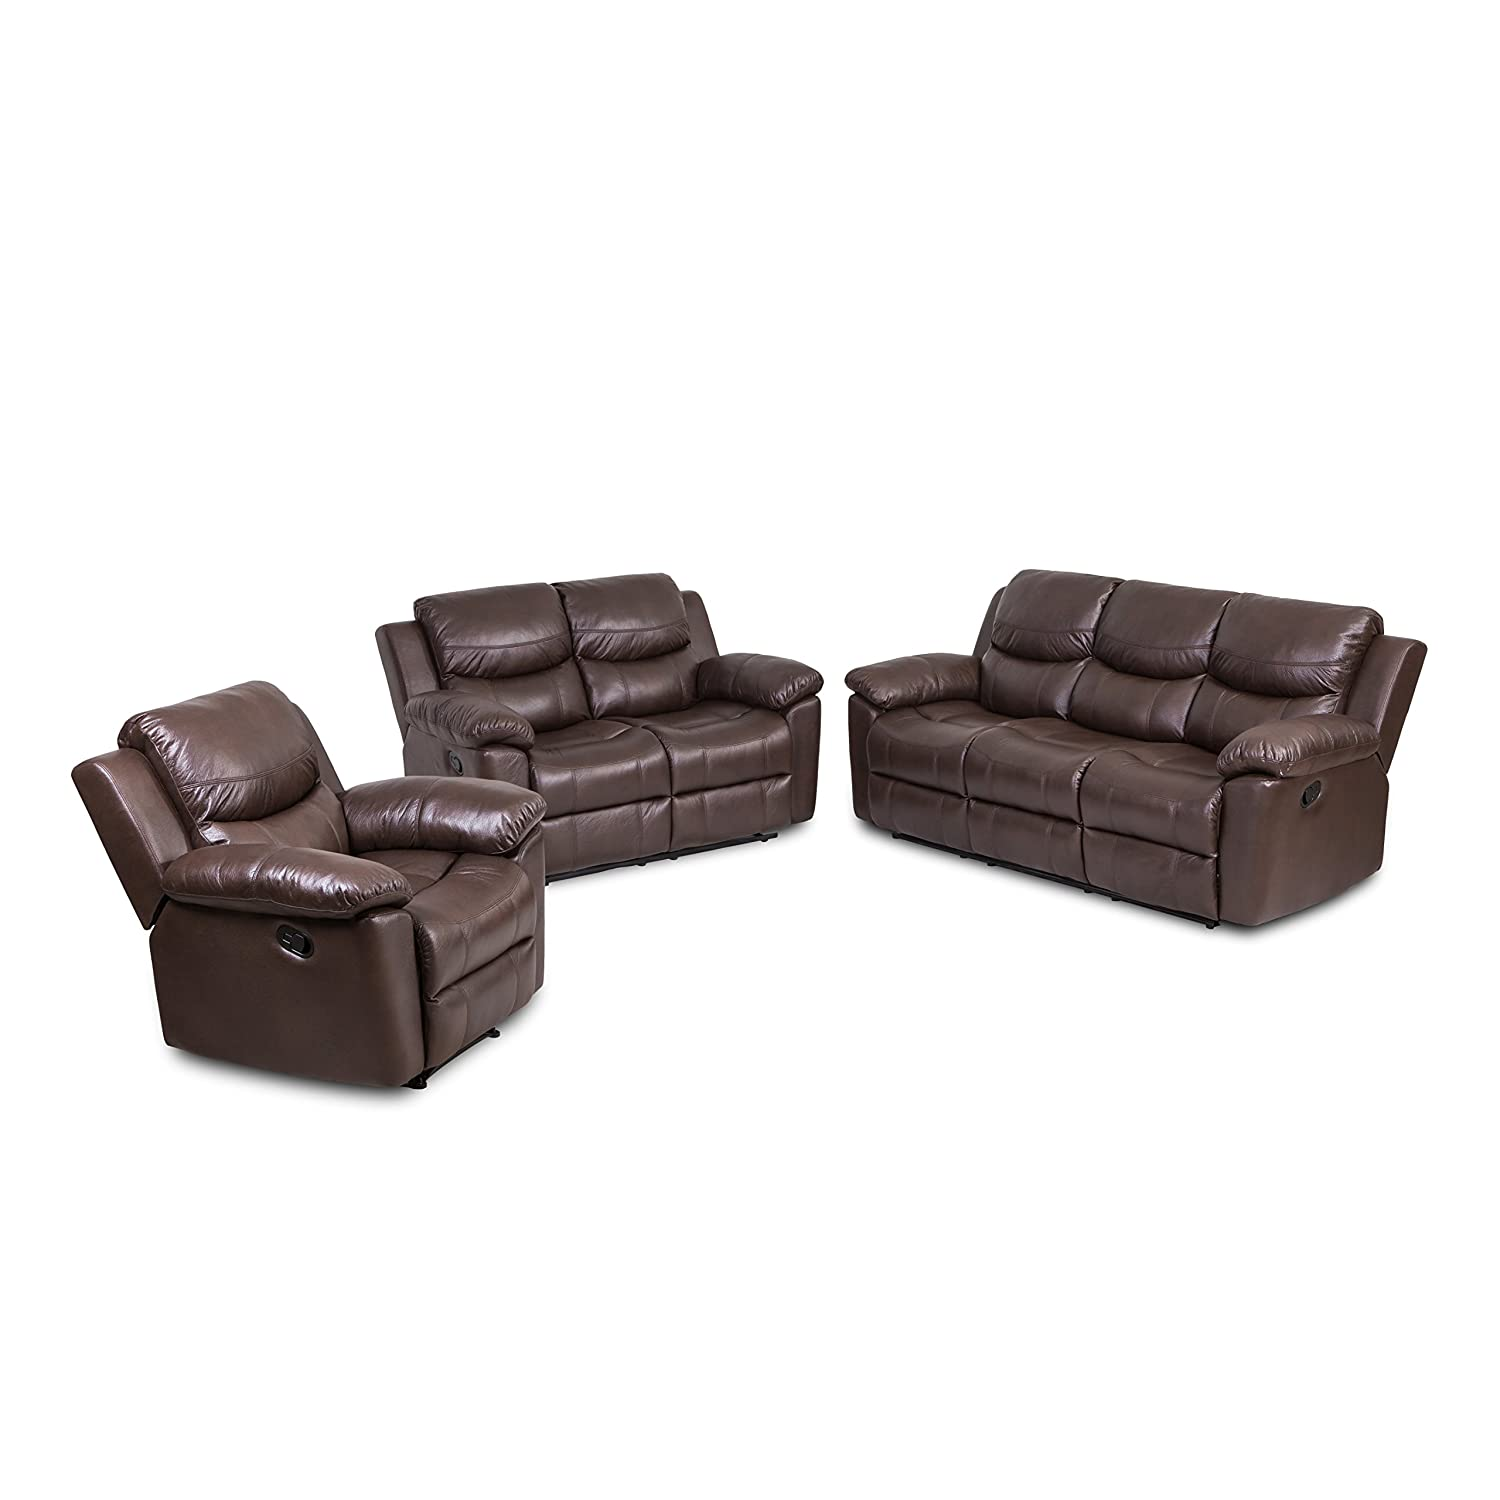 Amazon com juntoso 3 pieces recliner sofa sets bonded leather lounge chair loveseat reclining couch for living room chocolate kitchen dining